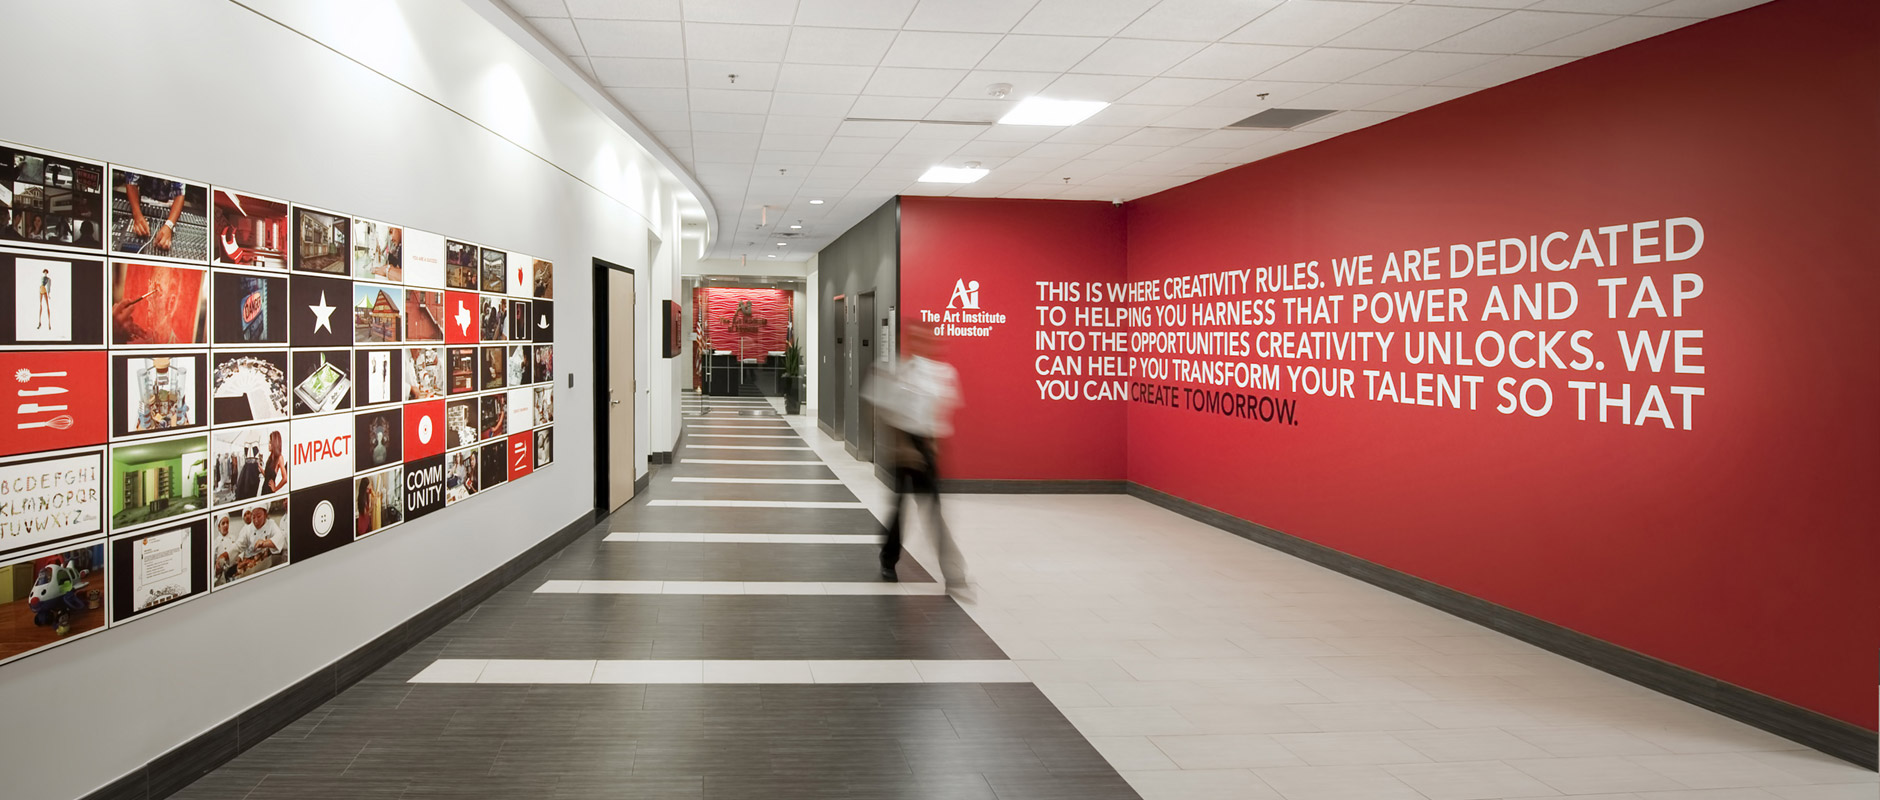 Consistency Quotes Wallpaper Environmental Branding Pelwhiz Technologies Private Limited